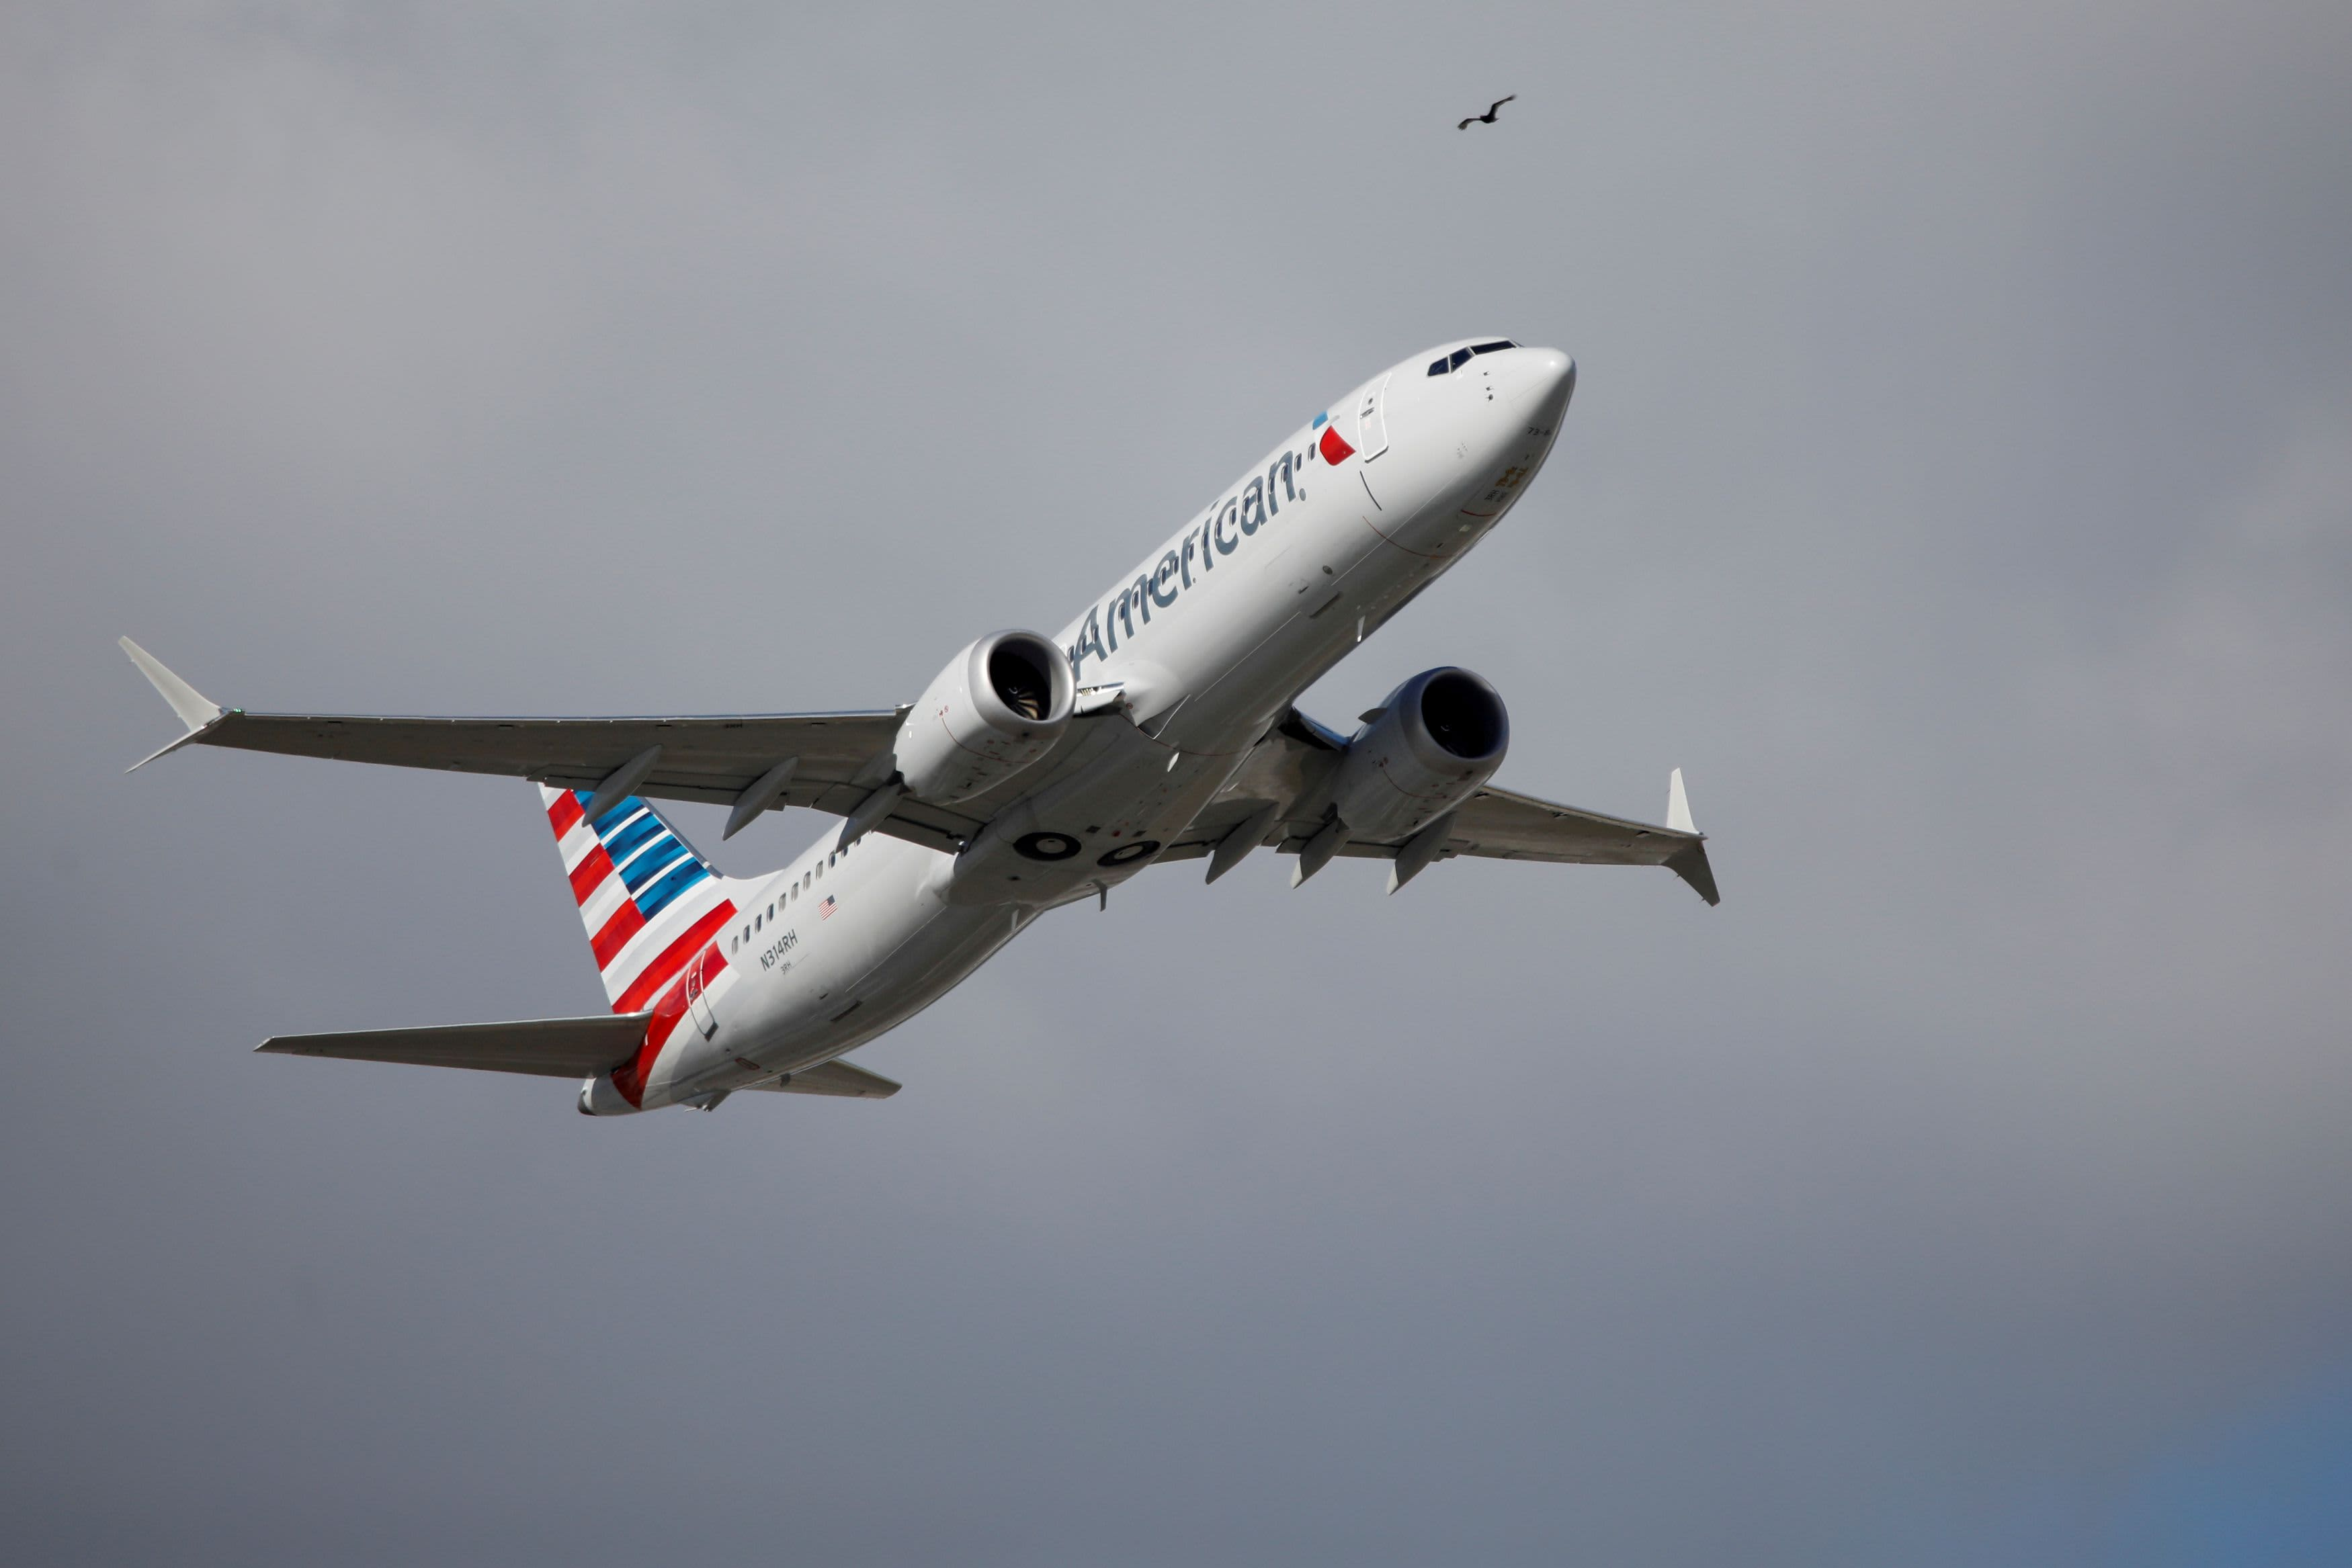 American Airlines plans $5 billion bond sale, $2.5 billion loan backed by frequent flyer program to pay back other debt